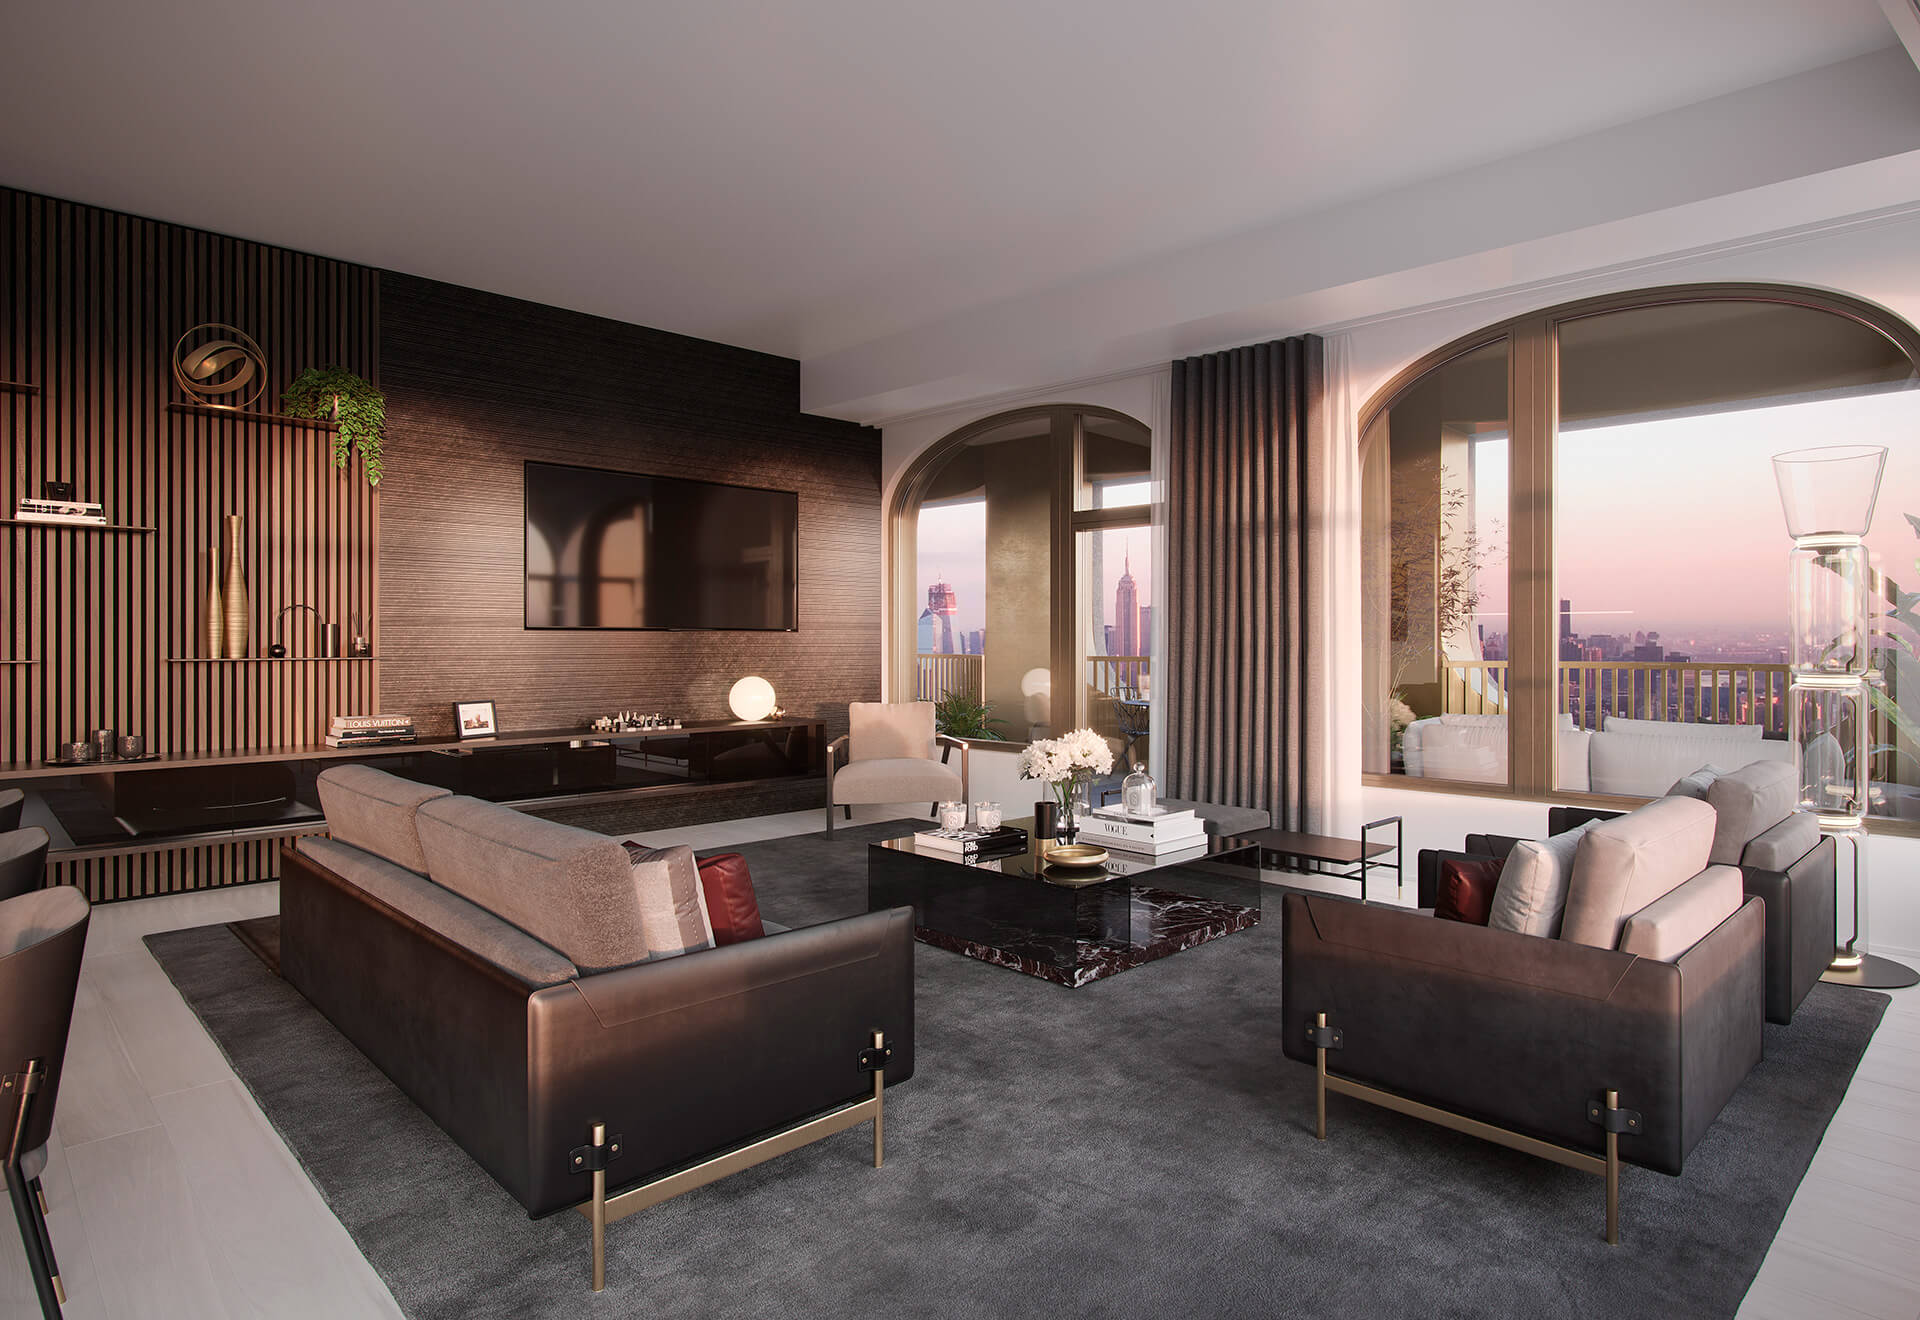 The spaces within the homes will feature products from Aston Martin collection | 130 William | New York | STIRworld